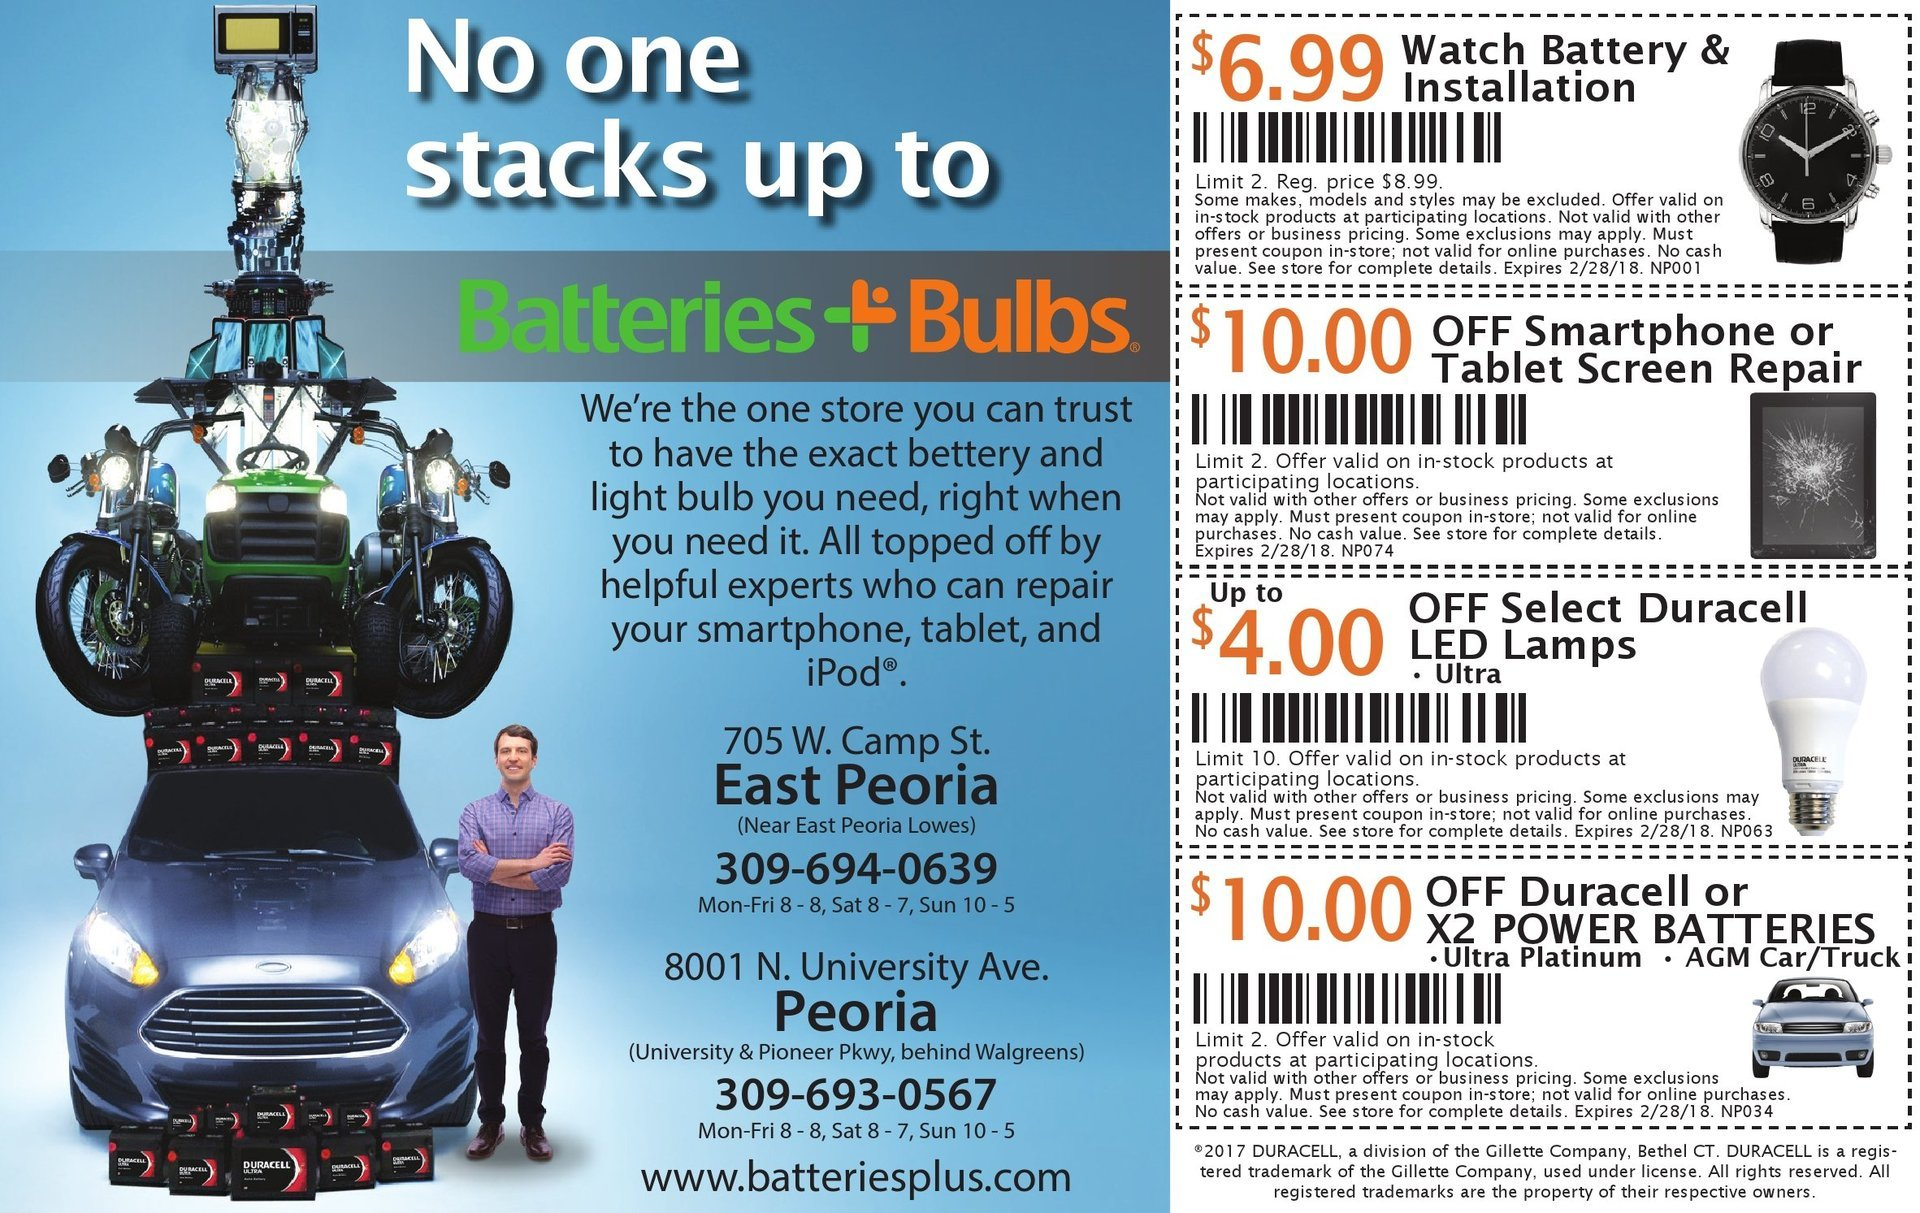 Batteries Plus Bulbs smartphone, tablet repair, led bulbs, car batteries coupons Peoria, East Peoria, IL